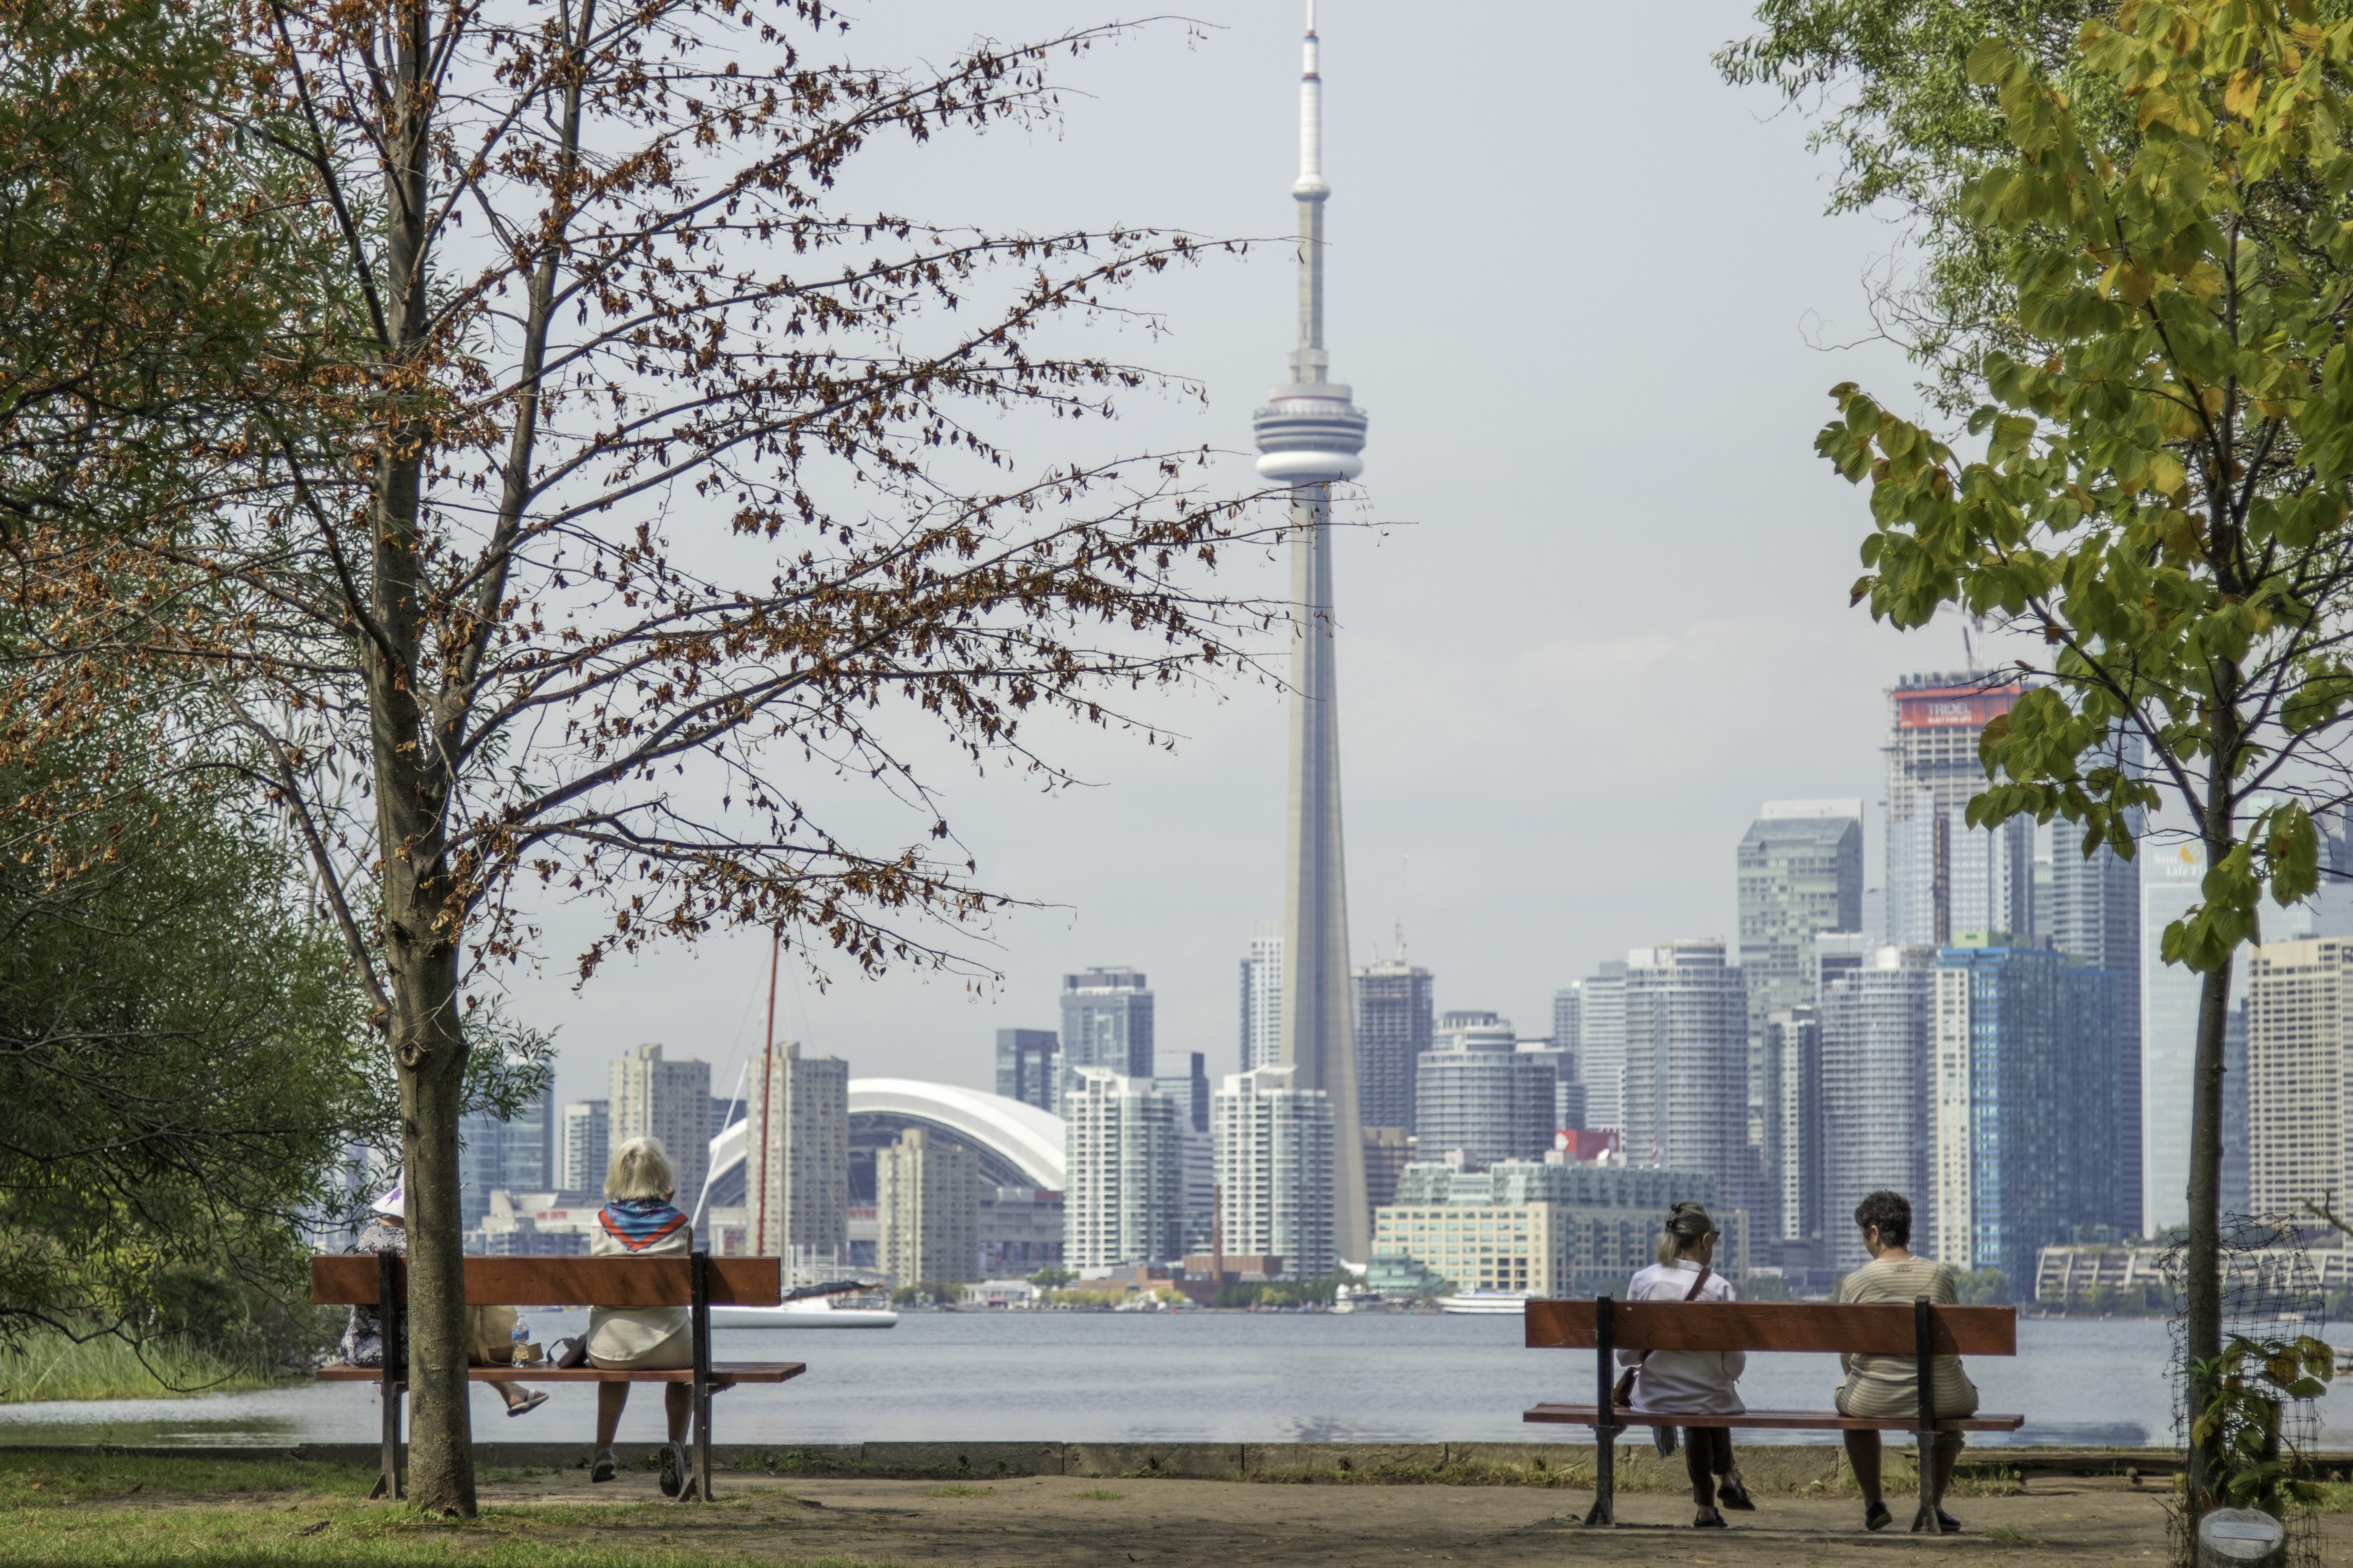 View of Toronto's downtown core from the vantage point of a park across a river.